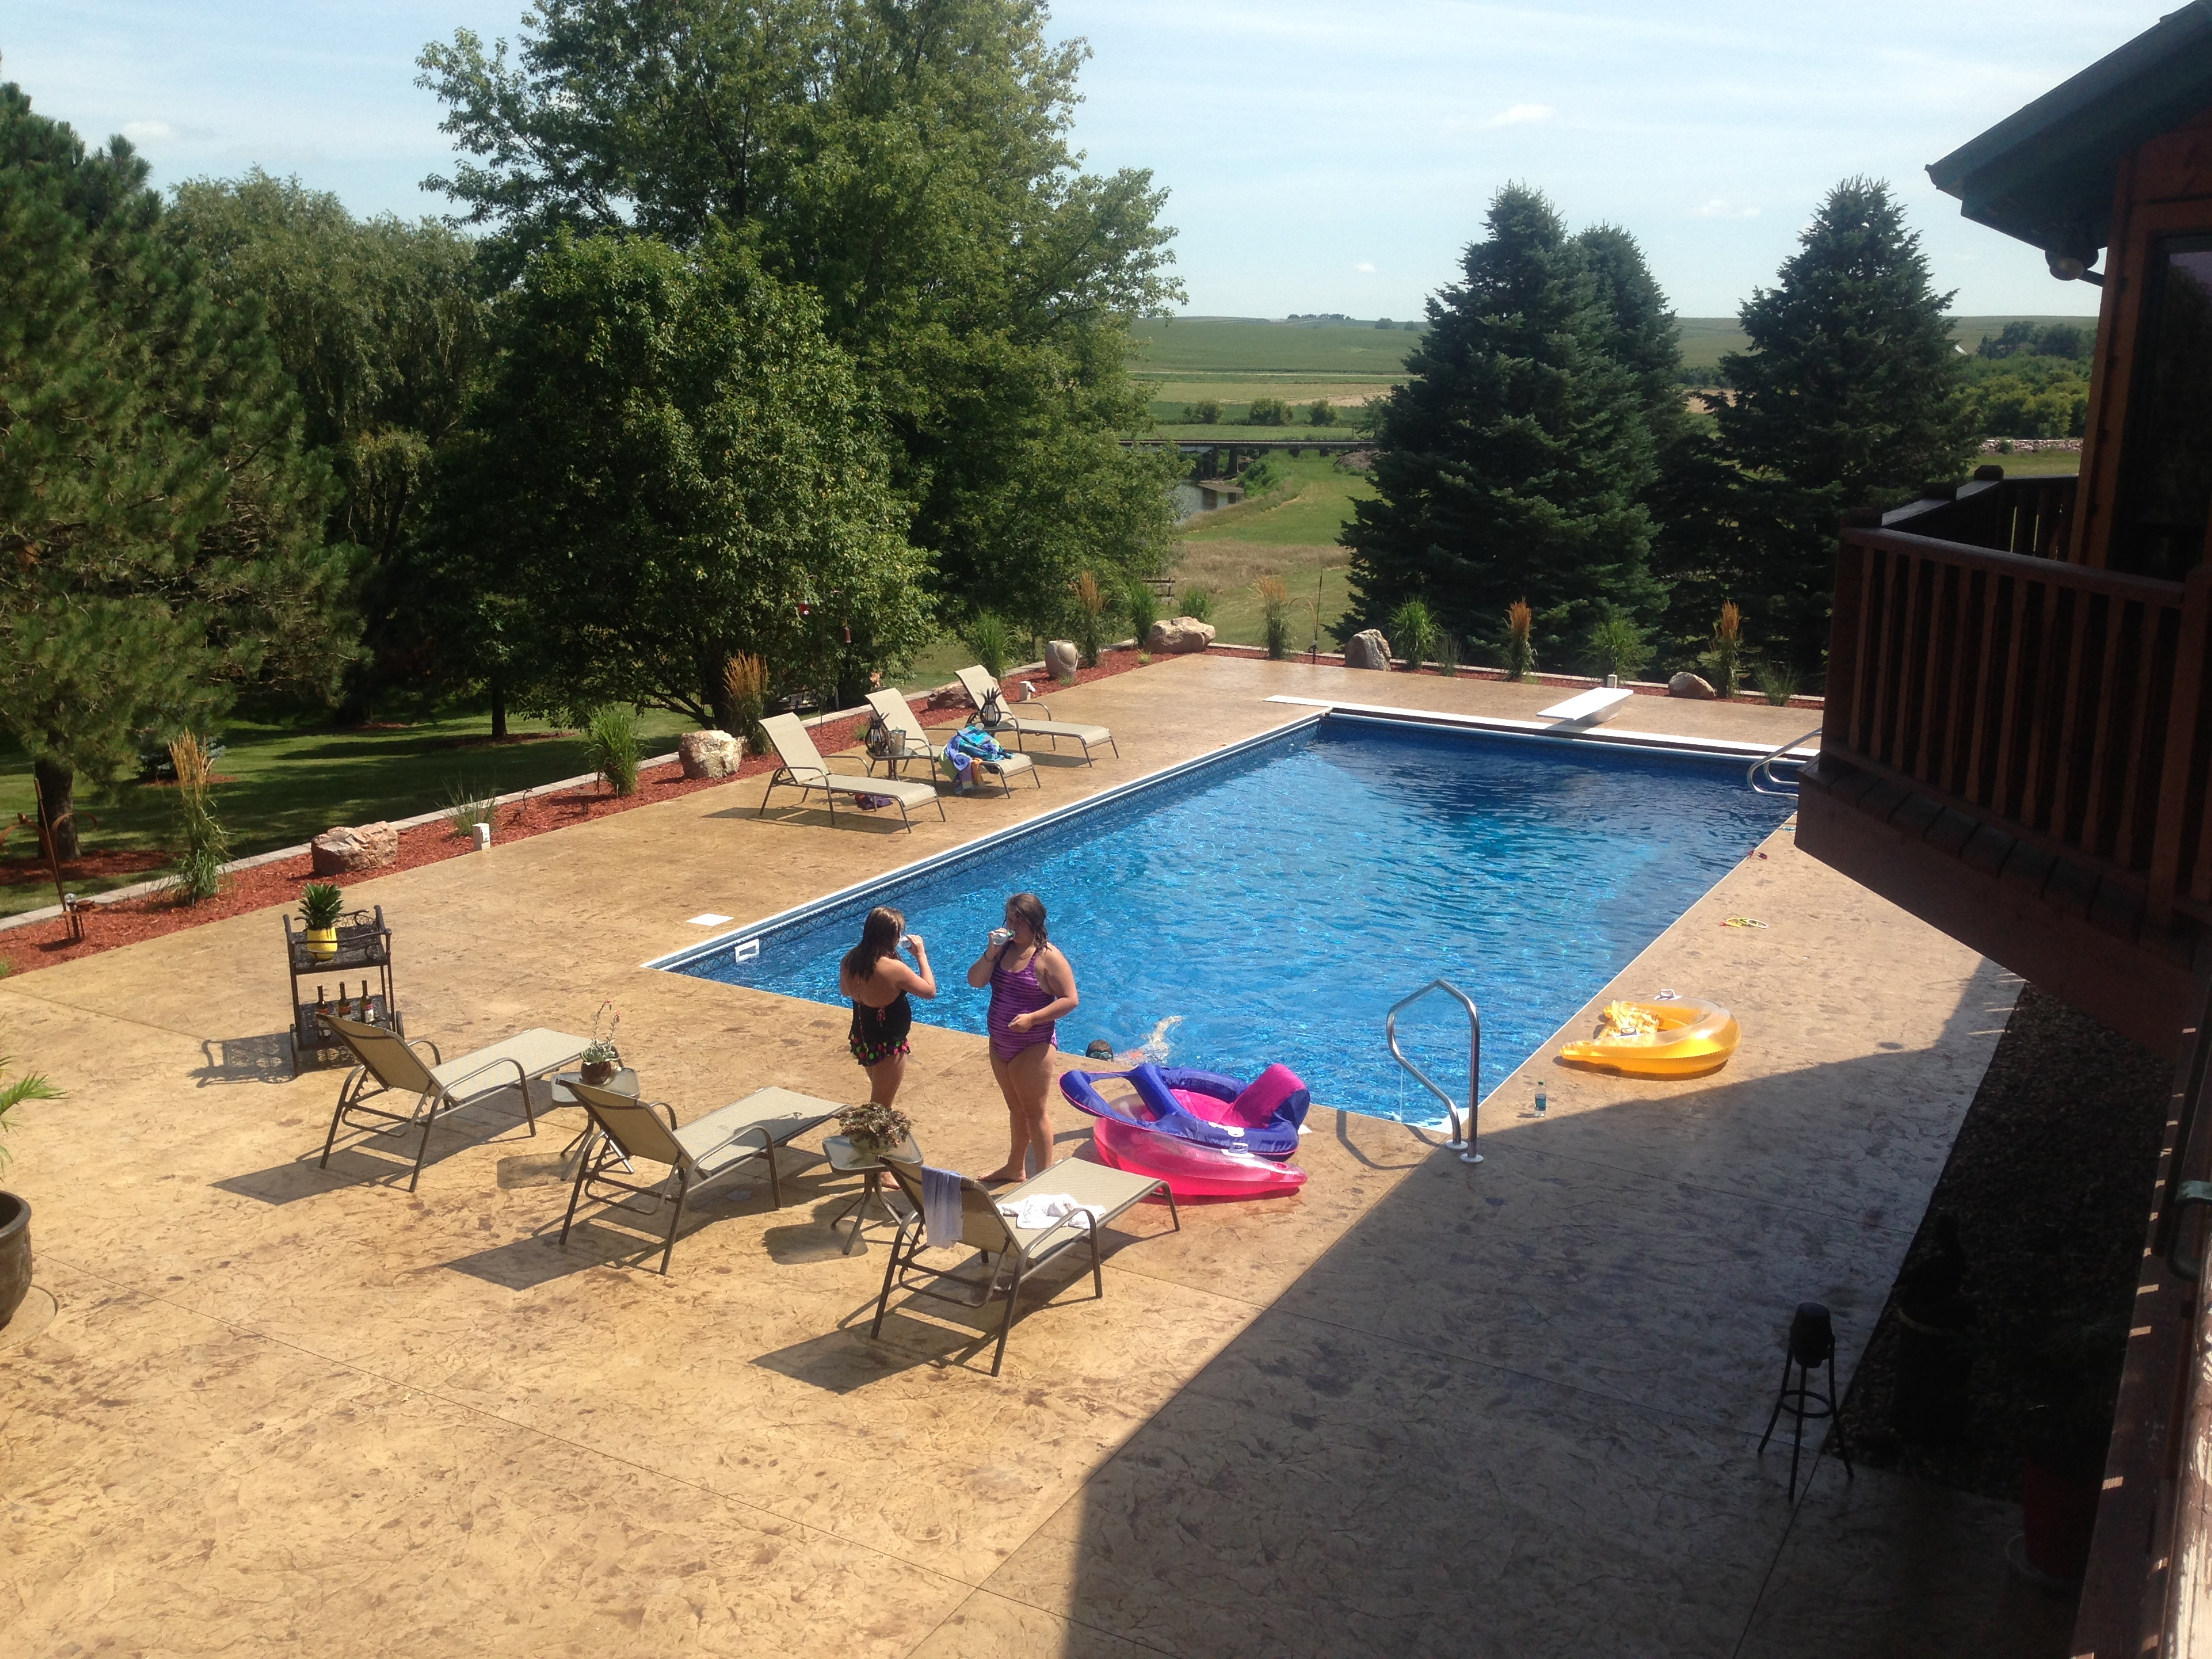 combined pool sioux city4 hot tubs sioux city above ground swimming pools patio furniture